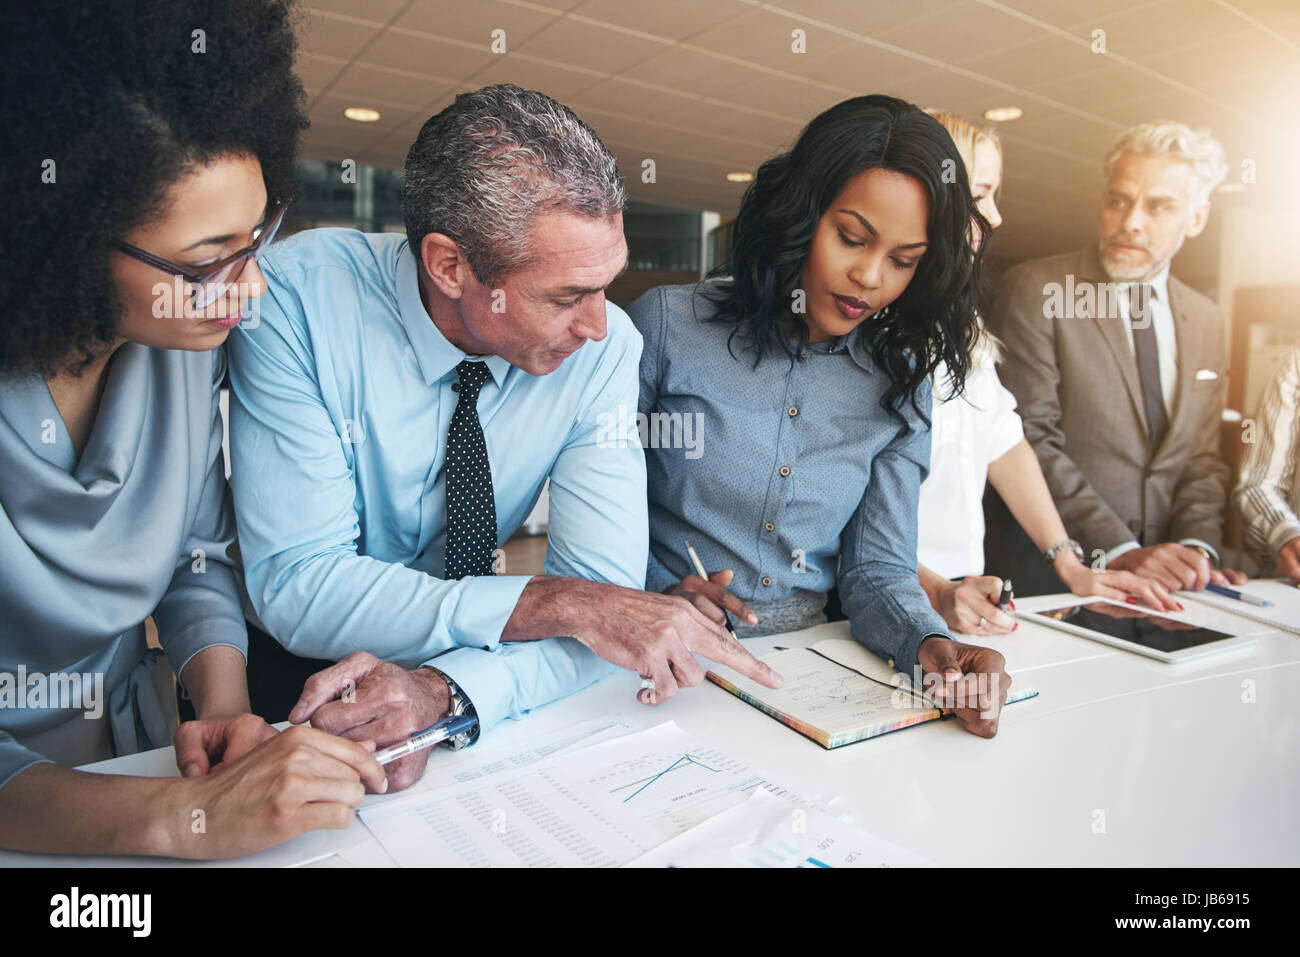 group contemporary office white espresso black and white group of people doing teamwork in contemporary office stock